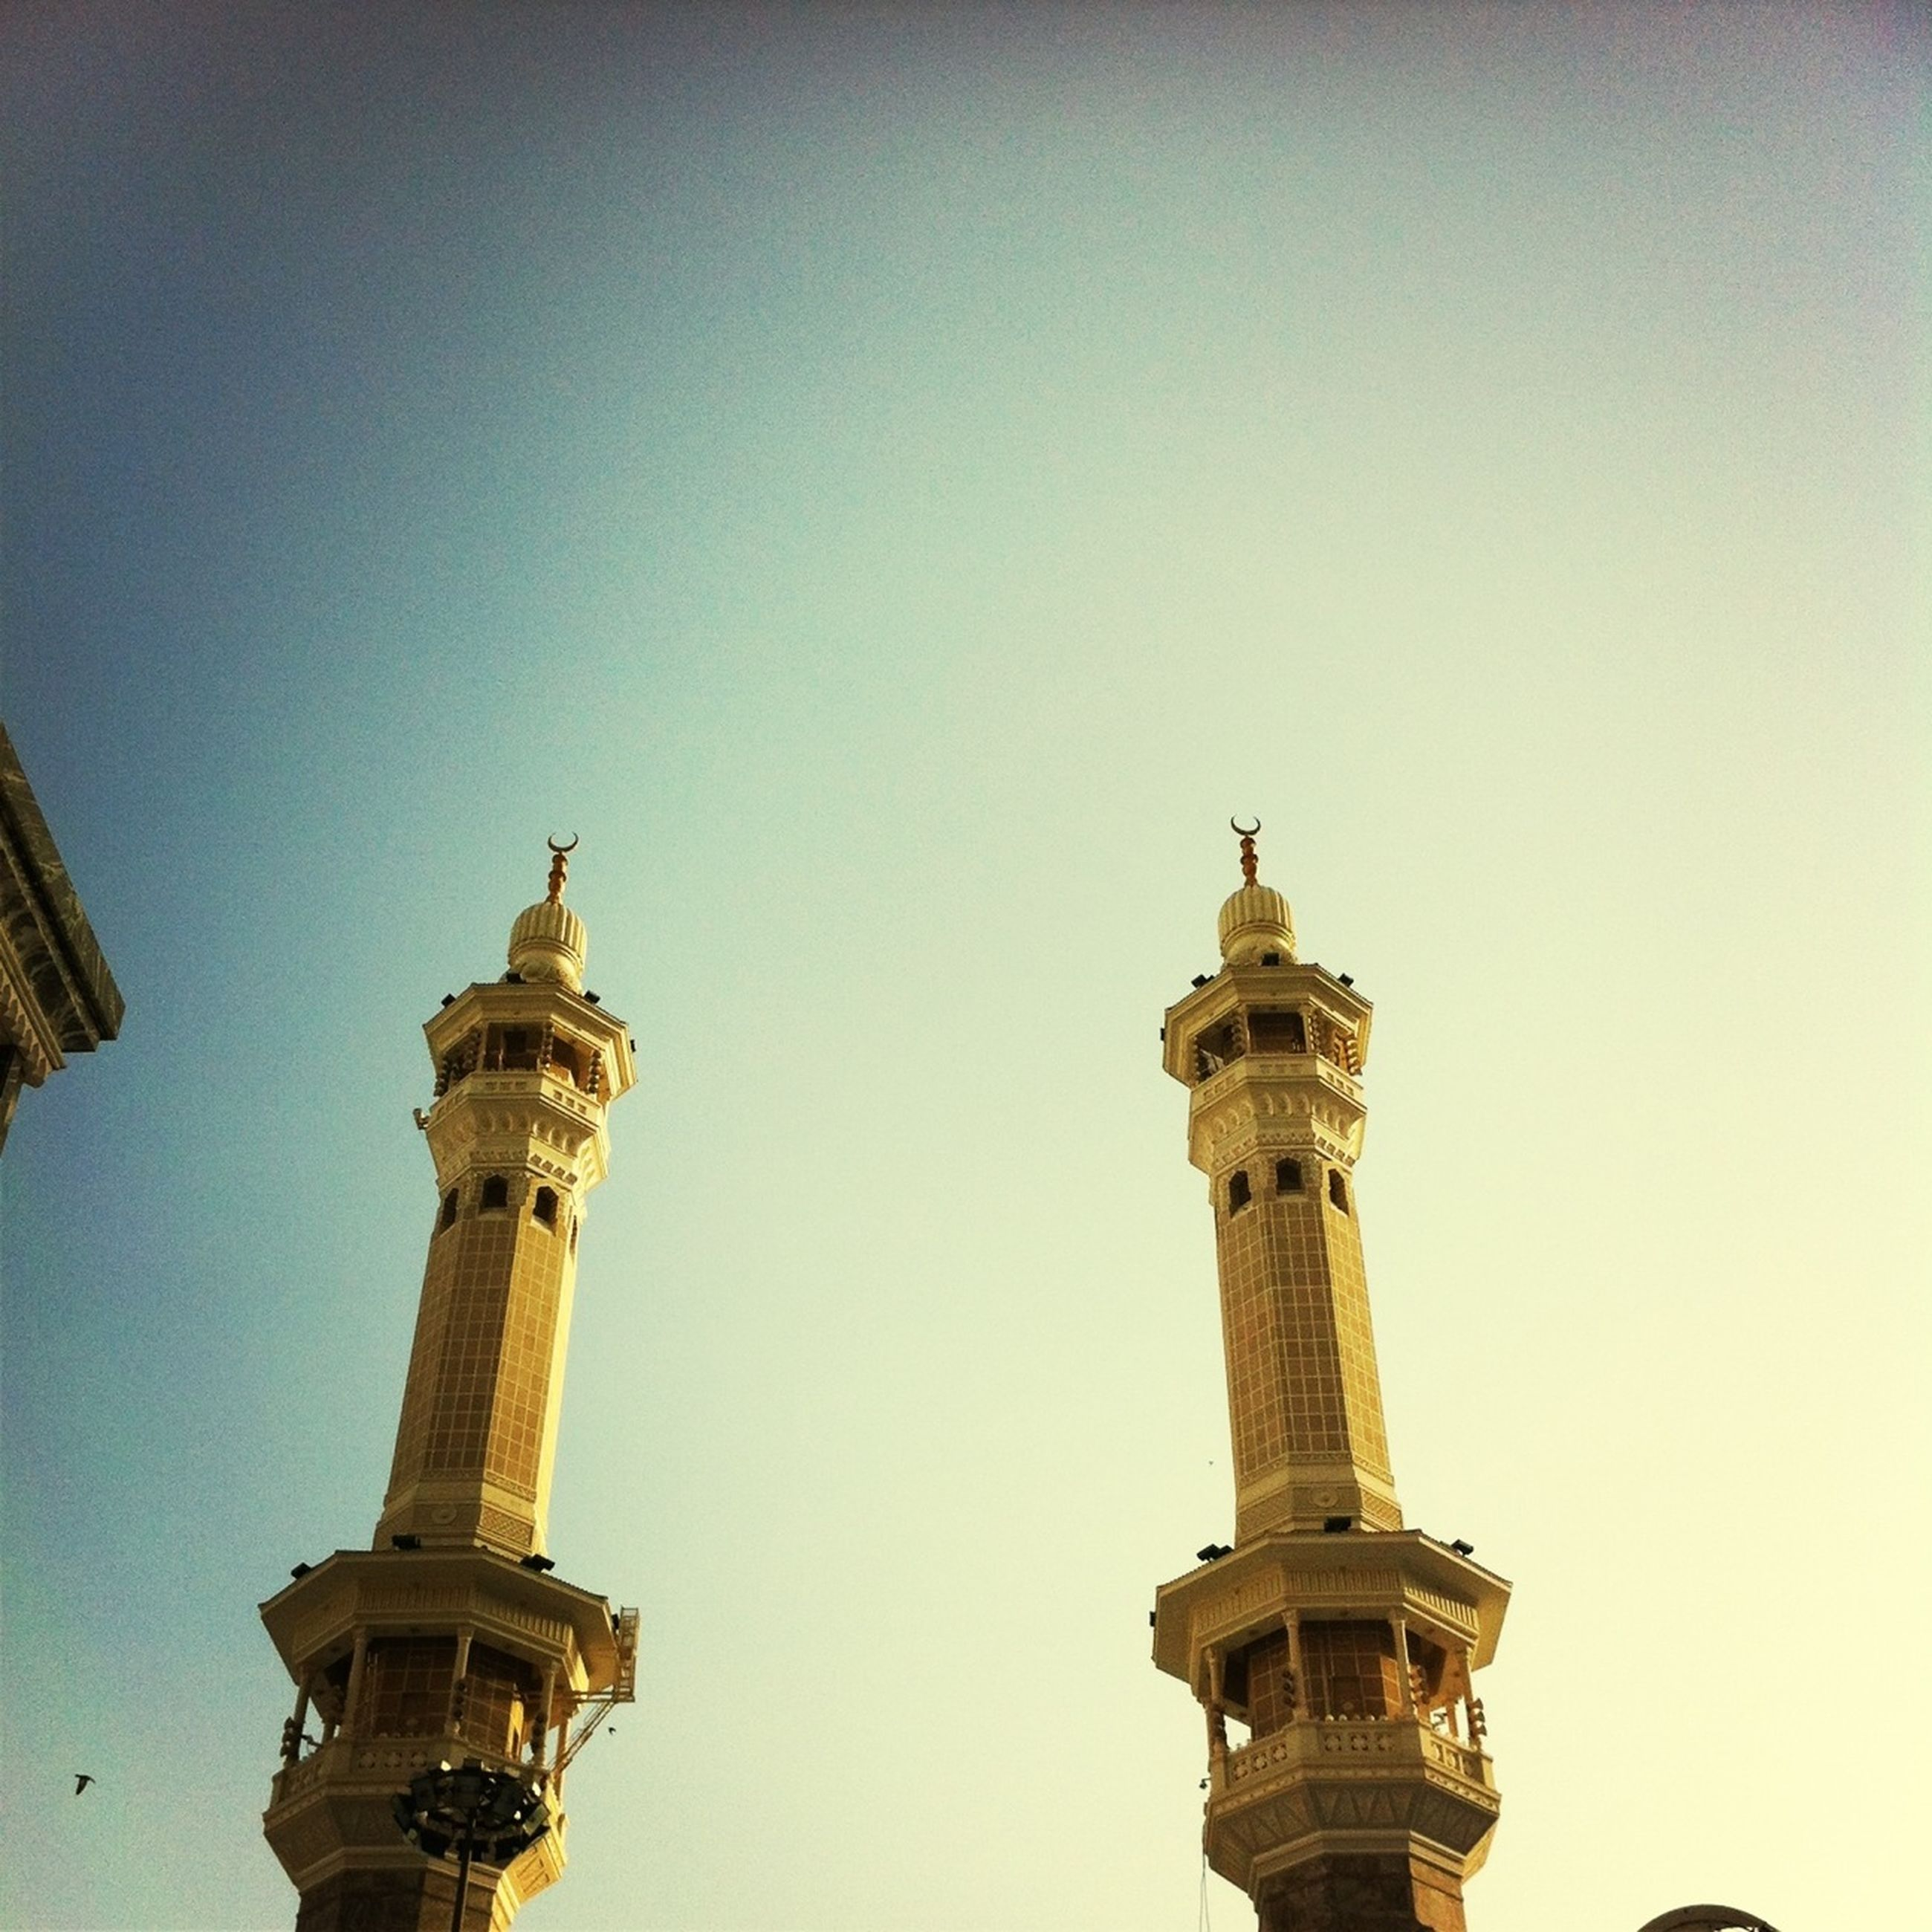 architecture, built structure, clear sky, low angle view, building exterior, famous place, copy space, travel destinations, international landmark, tower, tourism, travel, capital cities, history, religion, outdoors, blue, day, islam, mosque